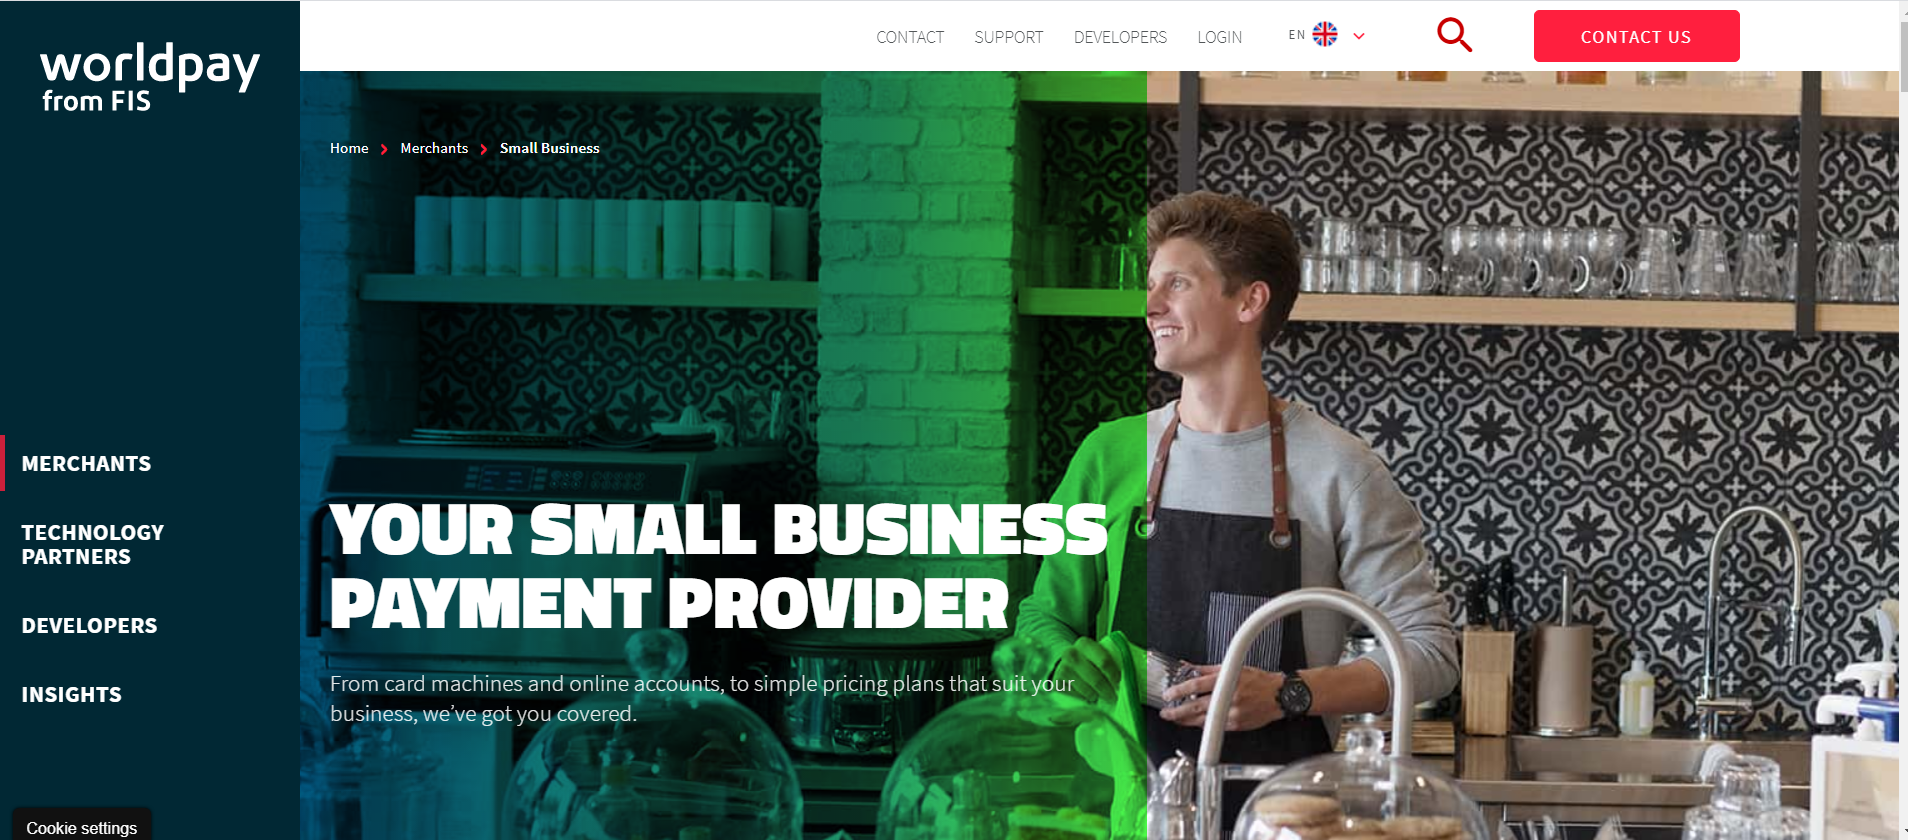 Card Machine Providers For Small Businesses 3